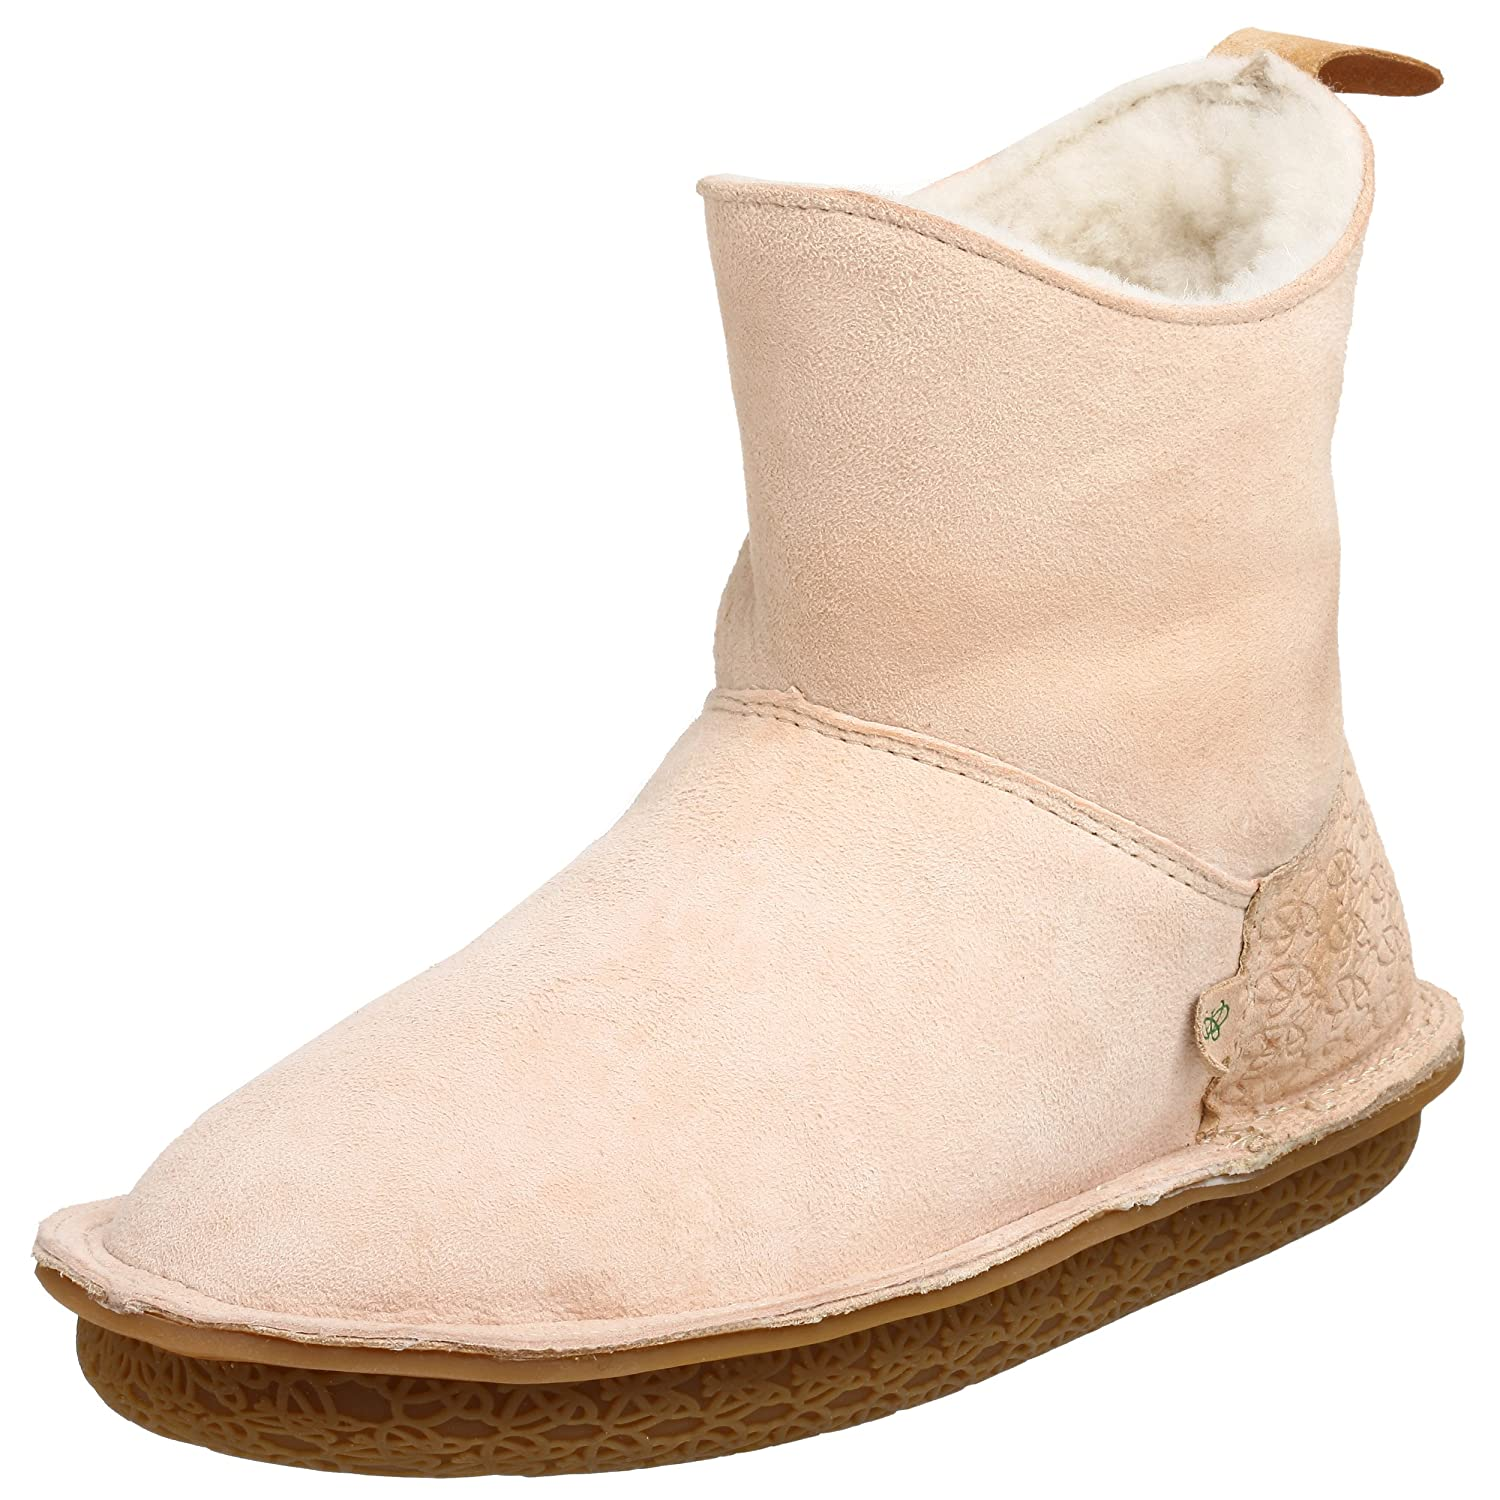 Women's Pep Boot by Po-Zu